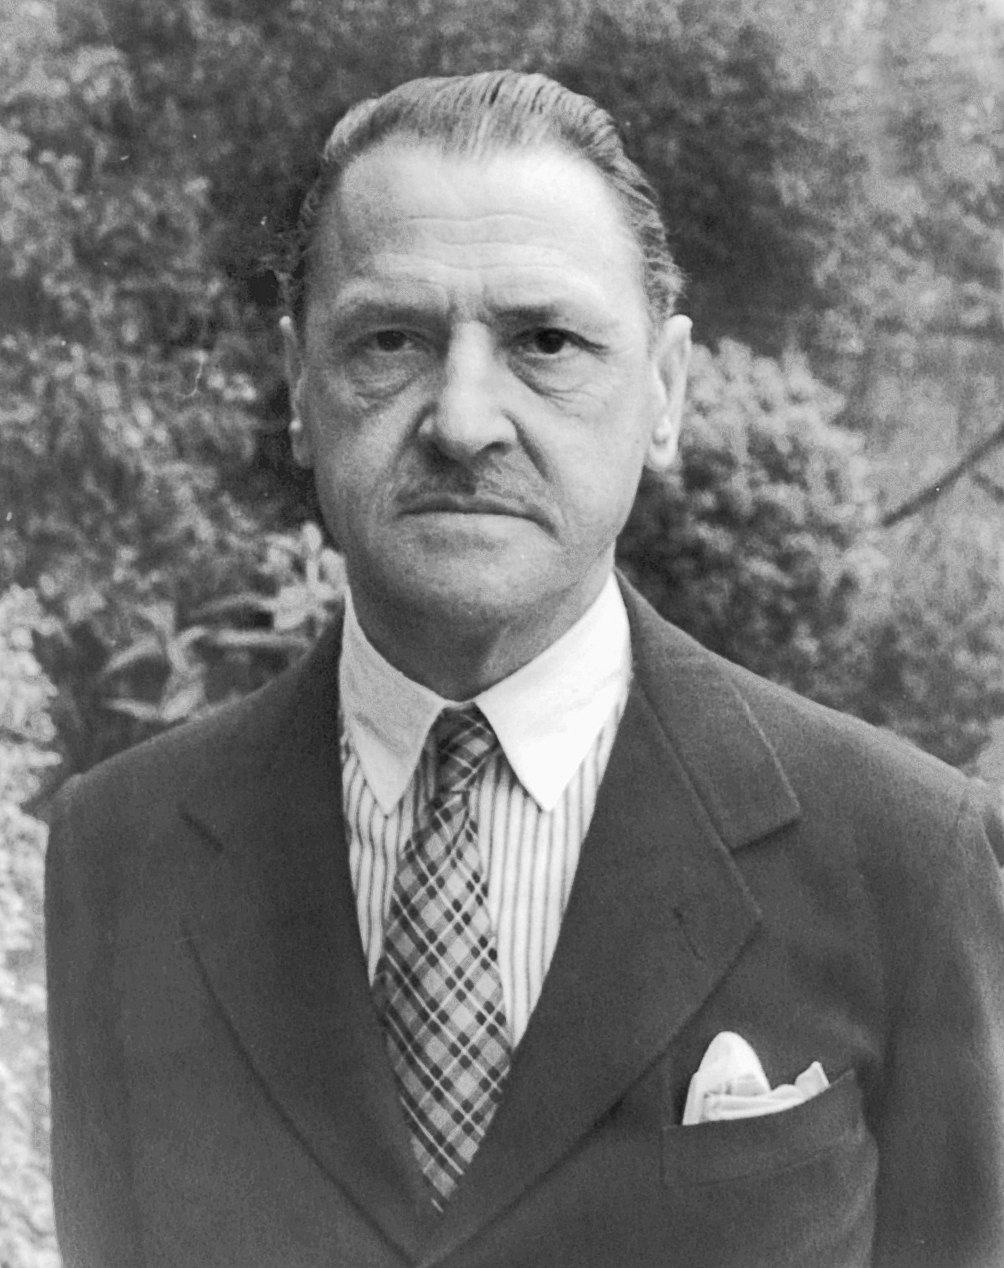 Portrait of W. Somerset Maugham